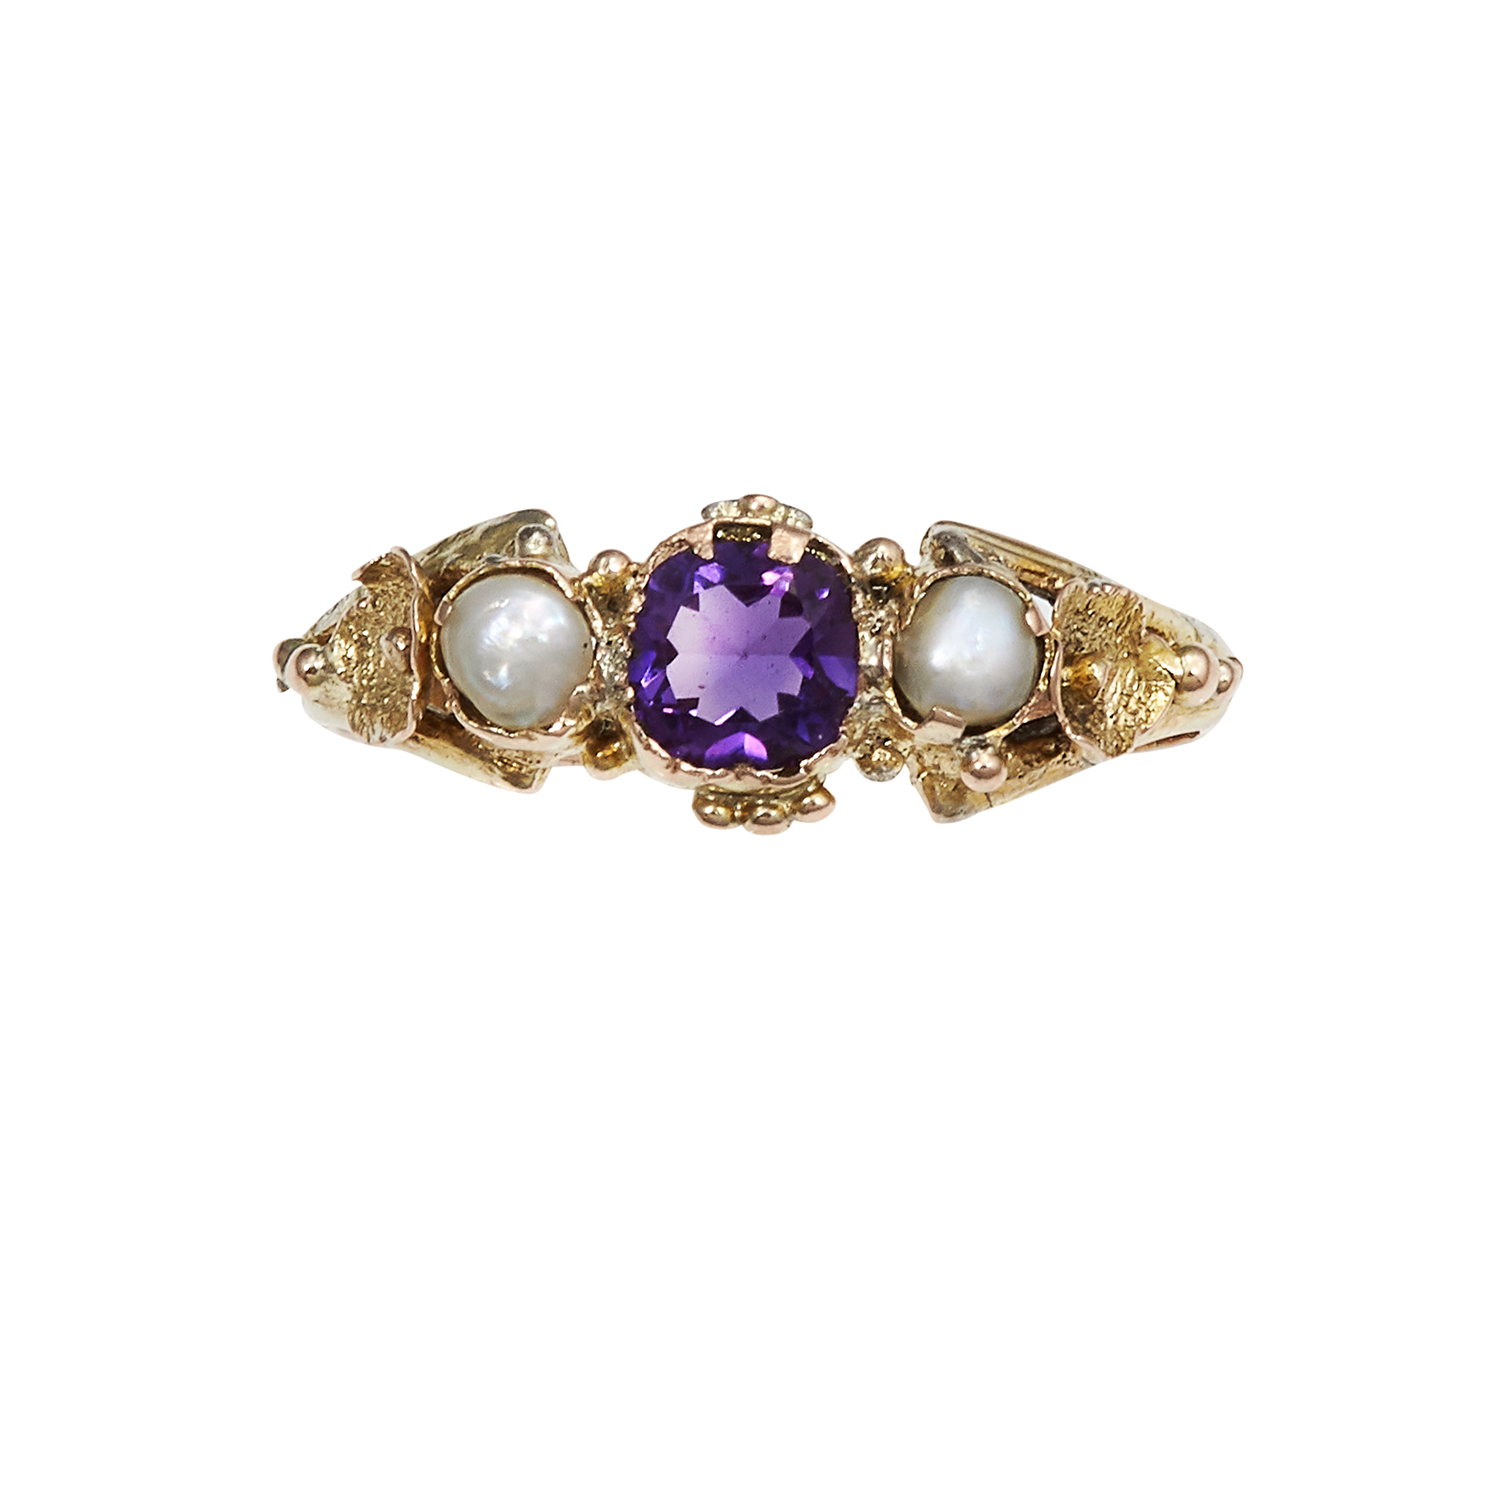 Los 21 - AN ANTIQUE AMETHYST AND PEARL RING, CIRCA 1855 in yellow gold, the round cut amethyst between